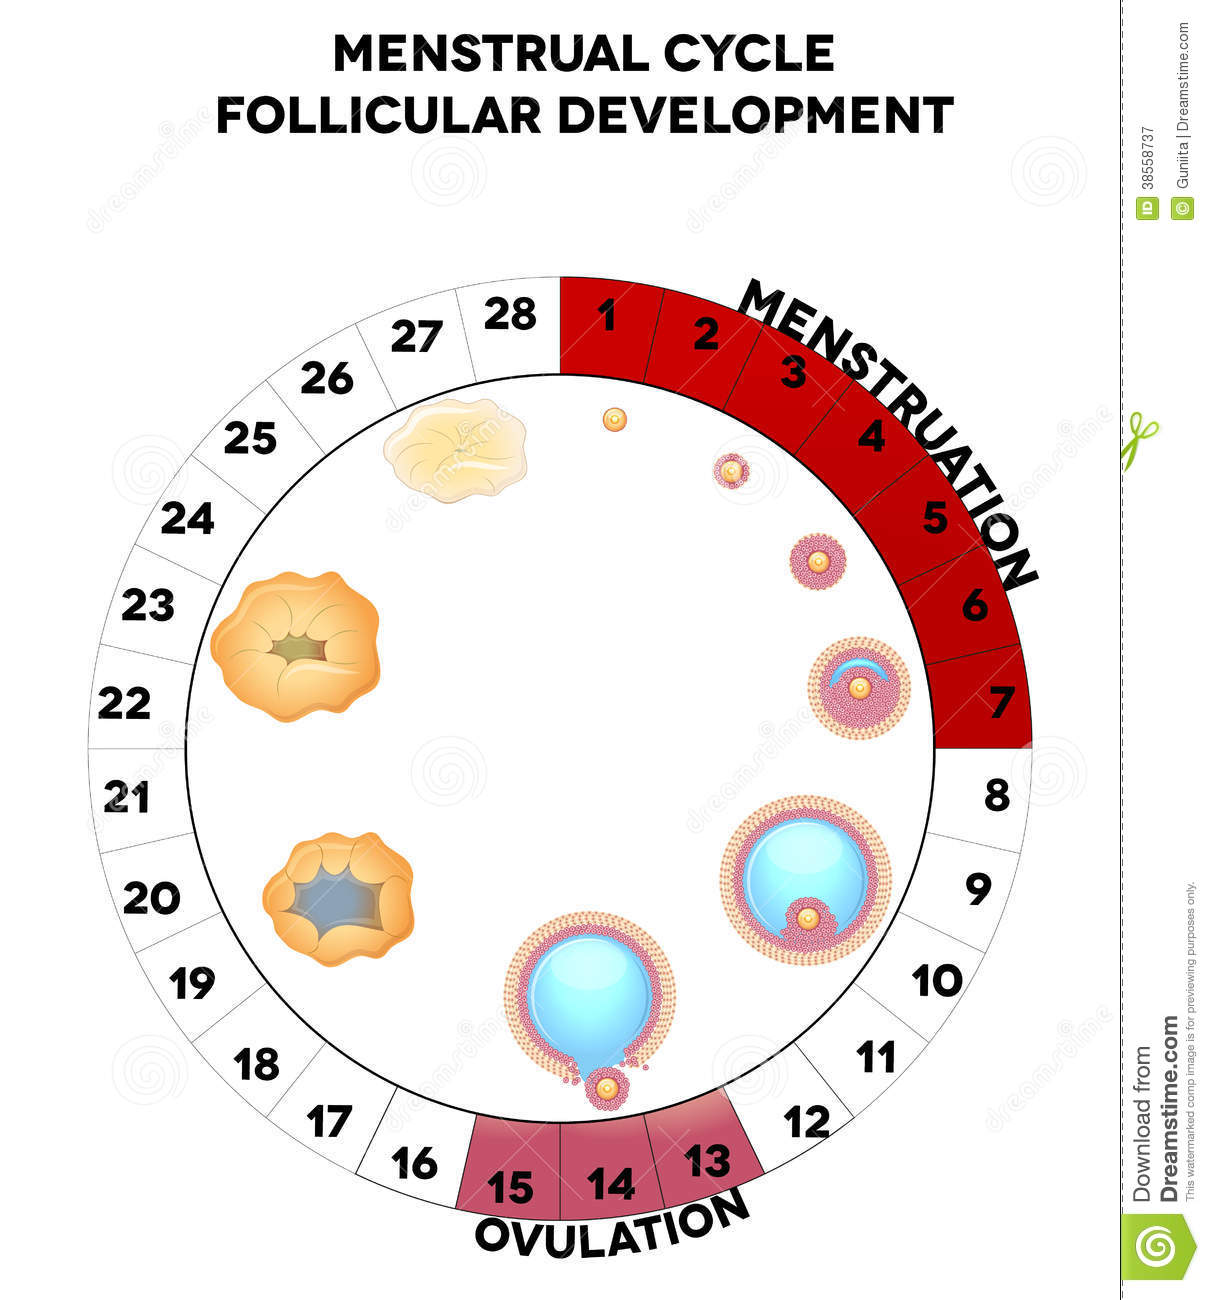 Menstrual cycle graphic, follicules